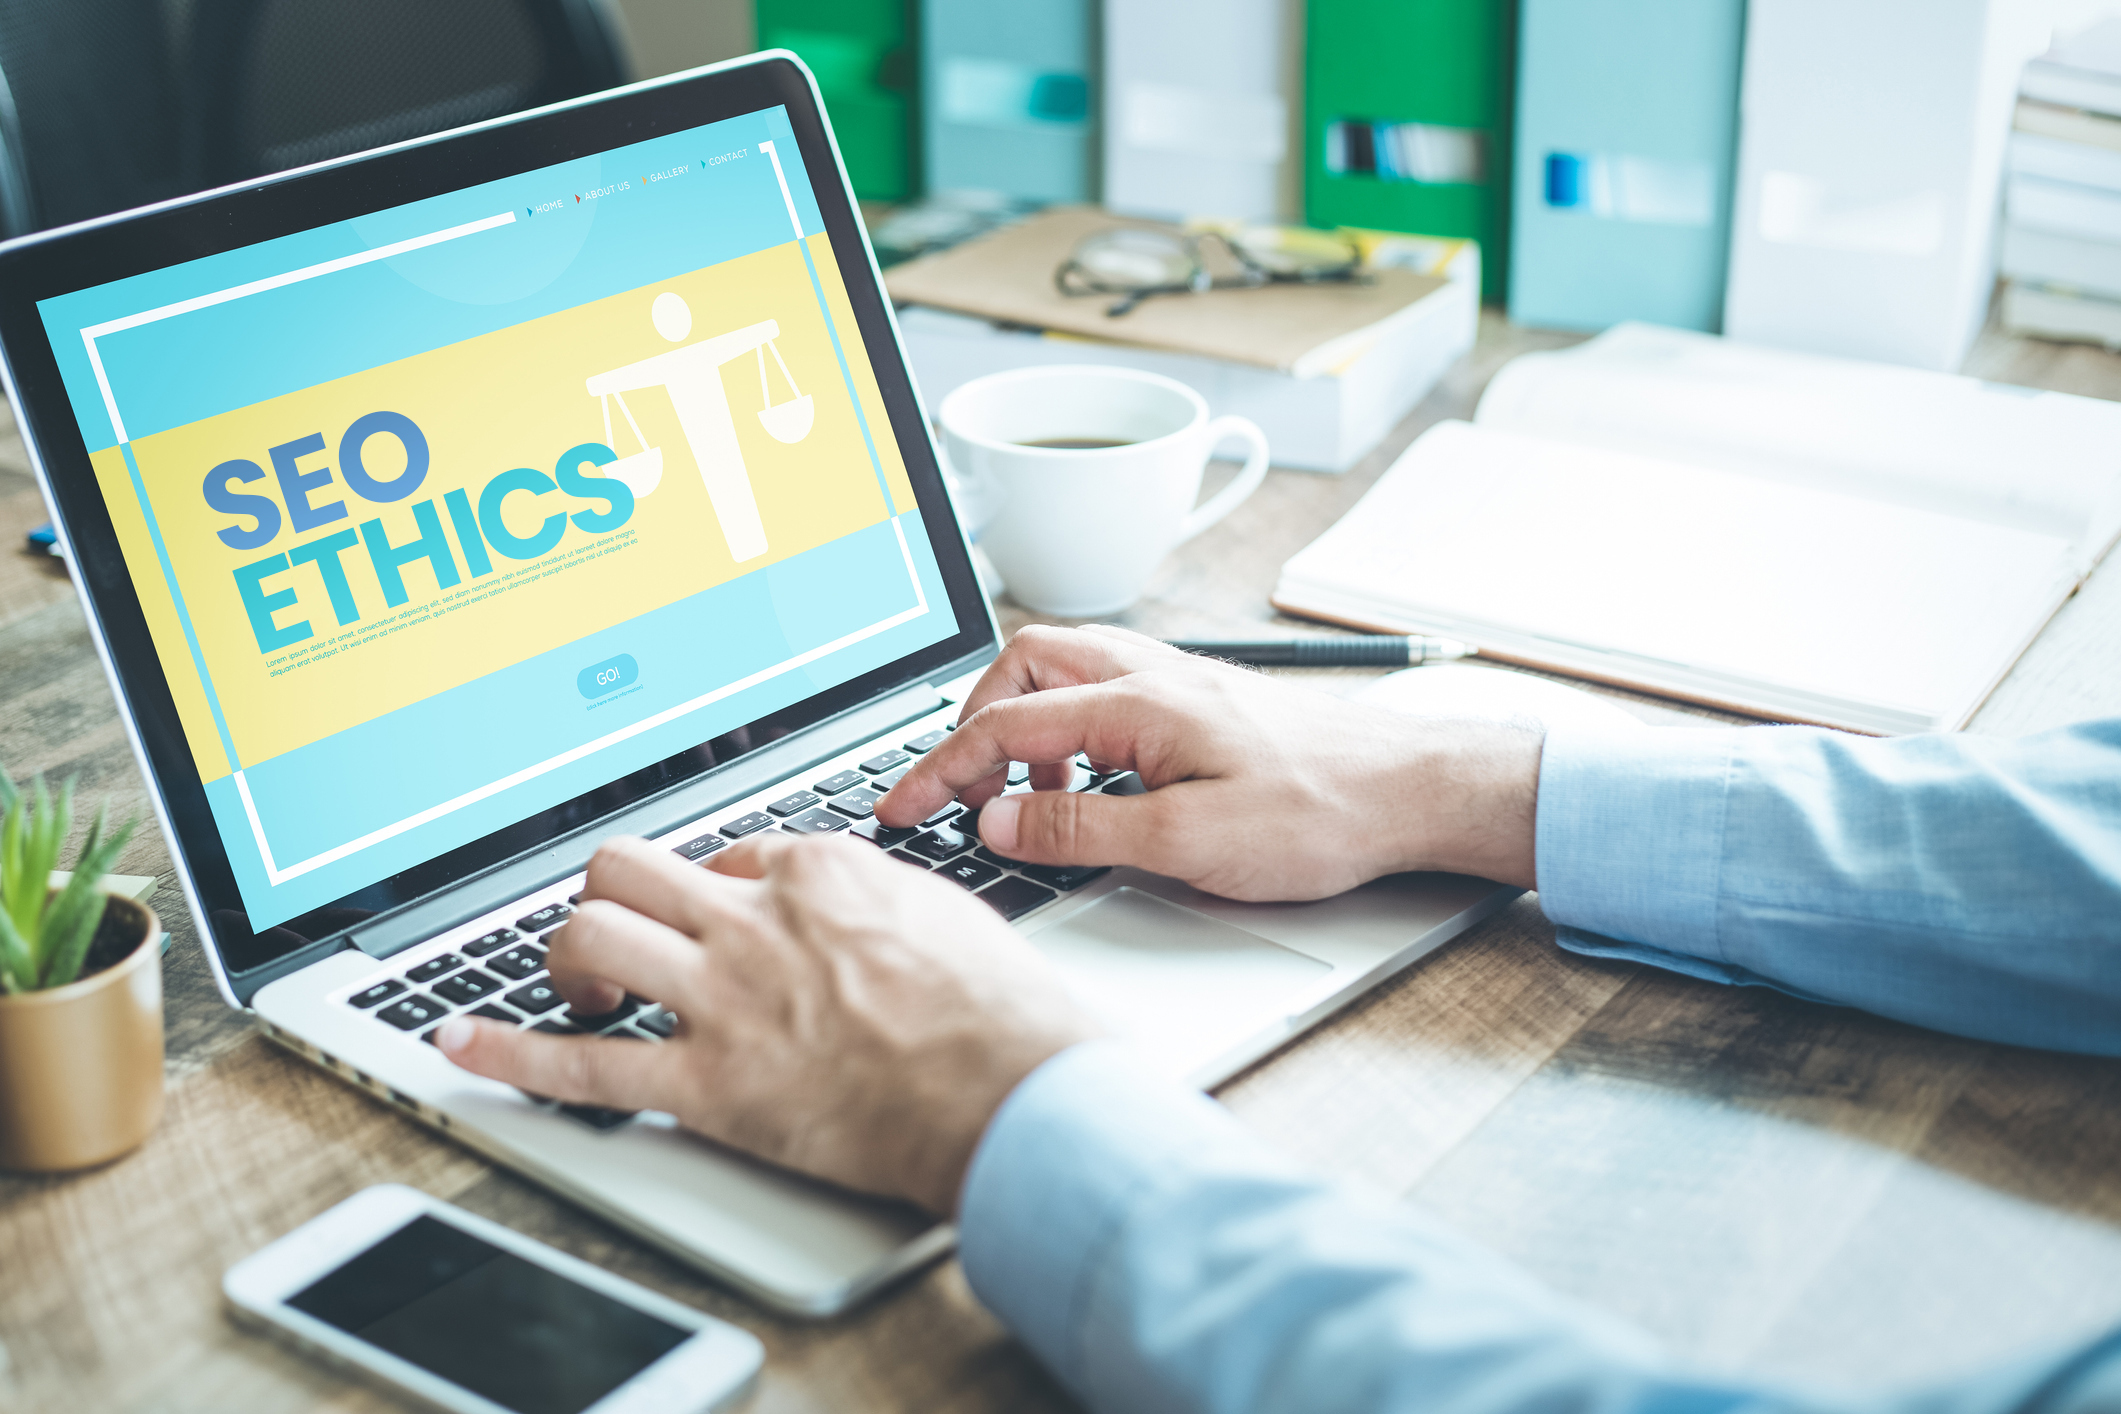 The SEO Code of Ethics: What Is It? Why Does It Matter? What's Included?